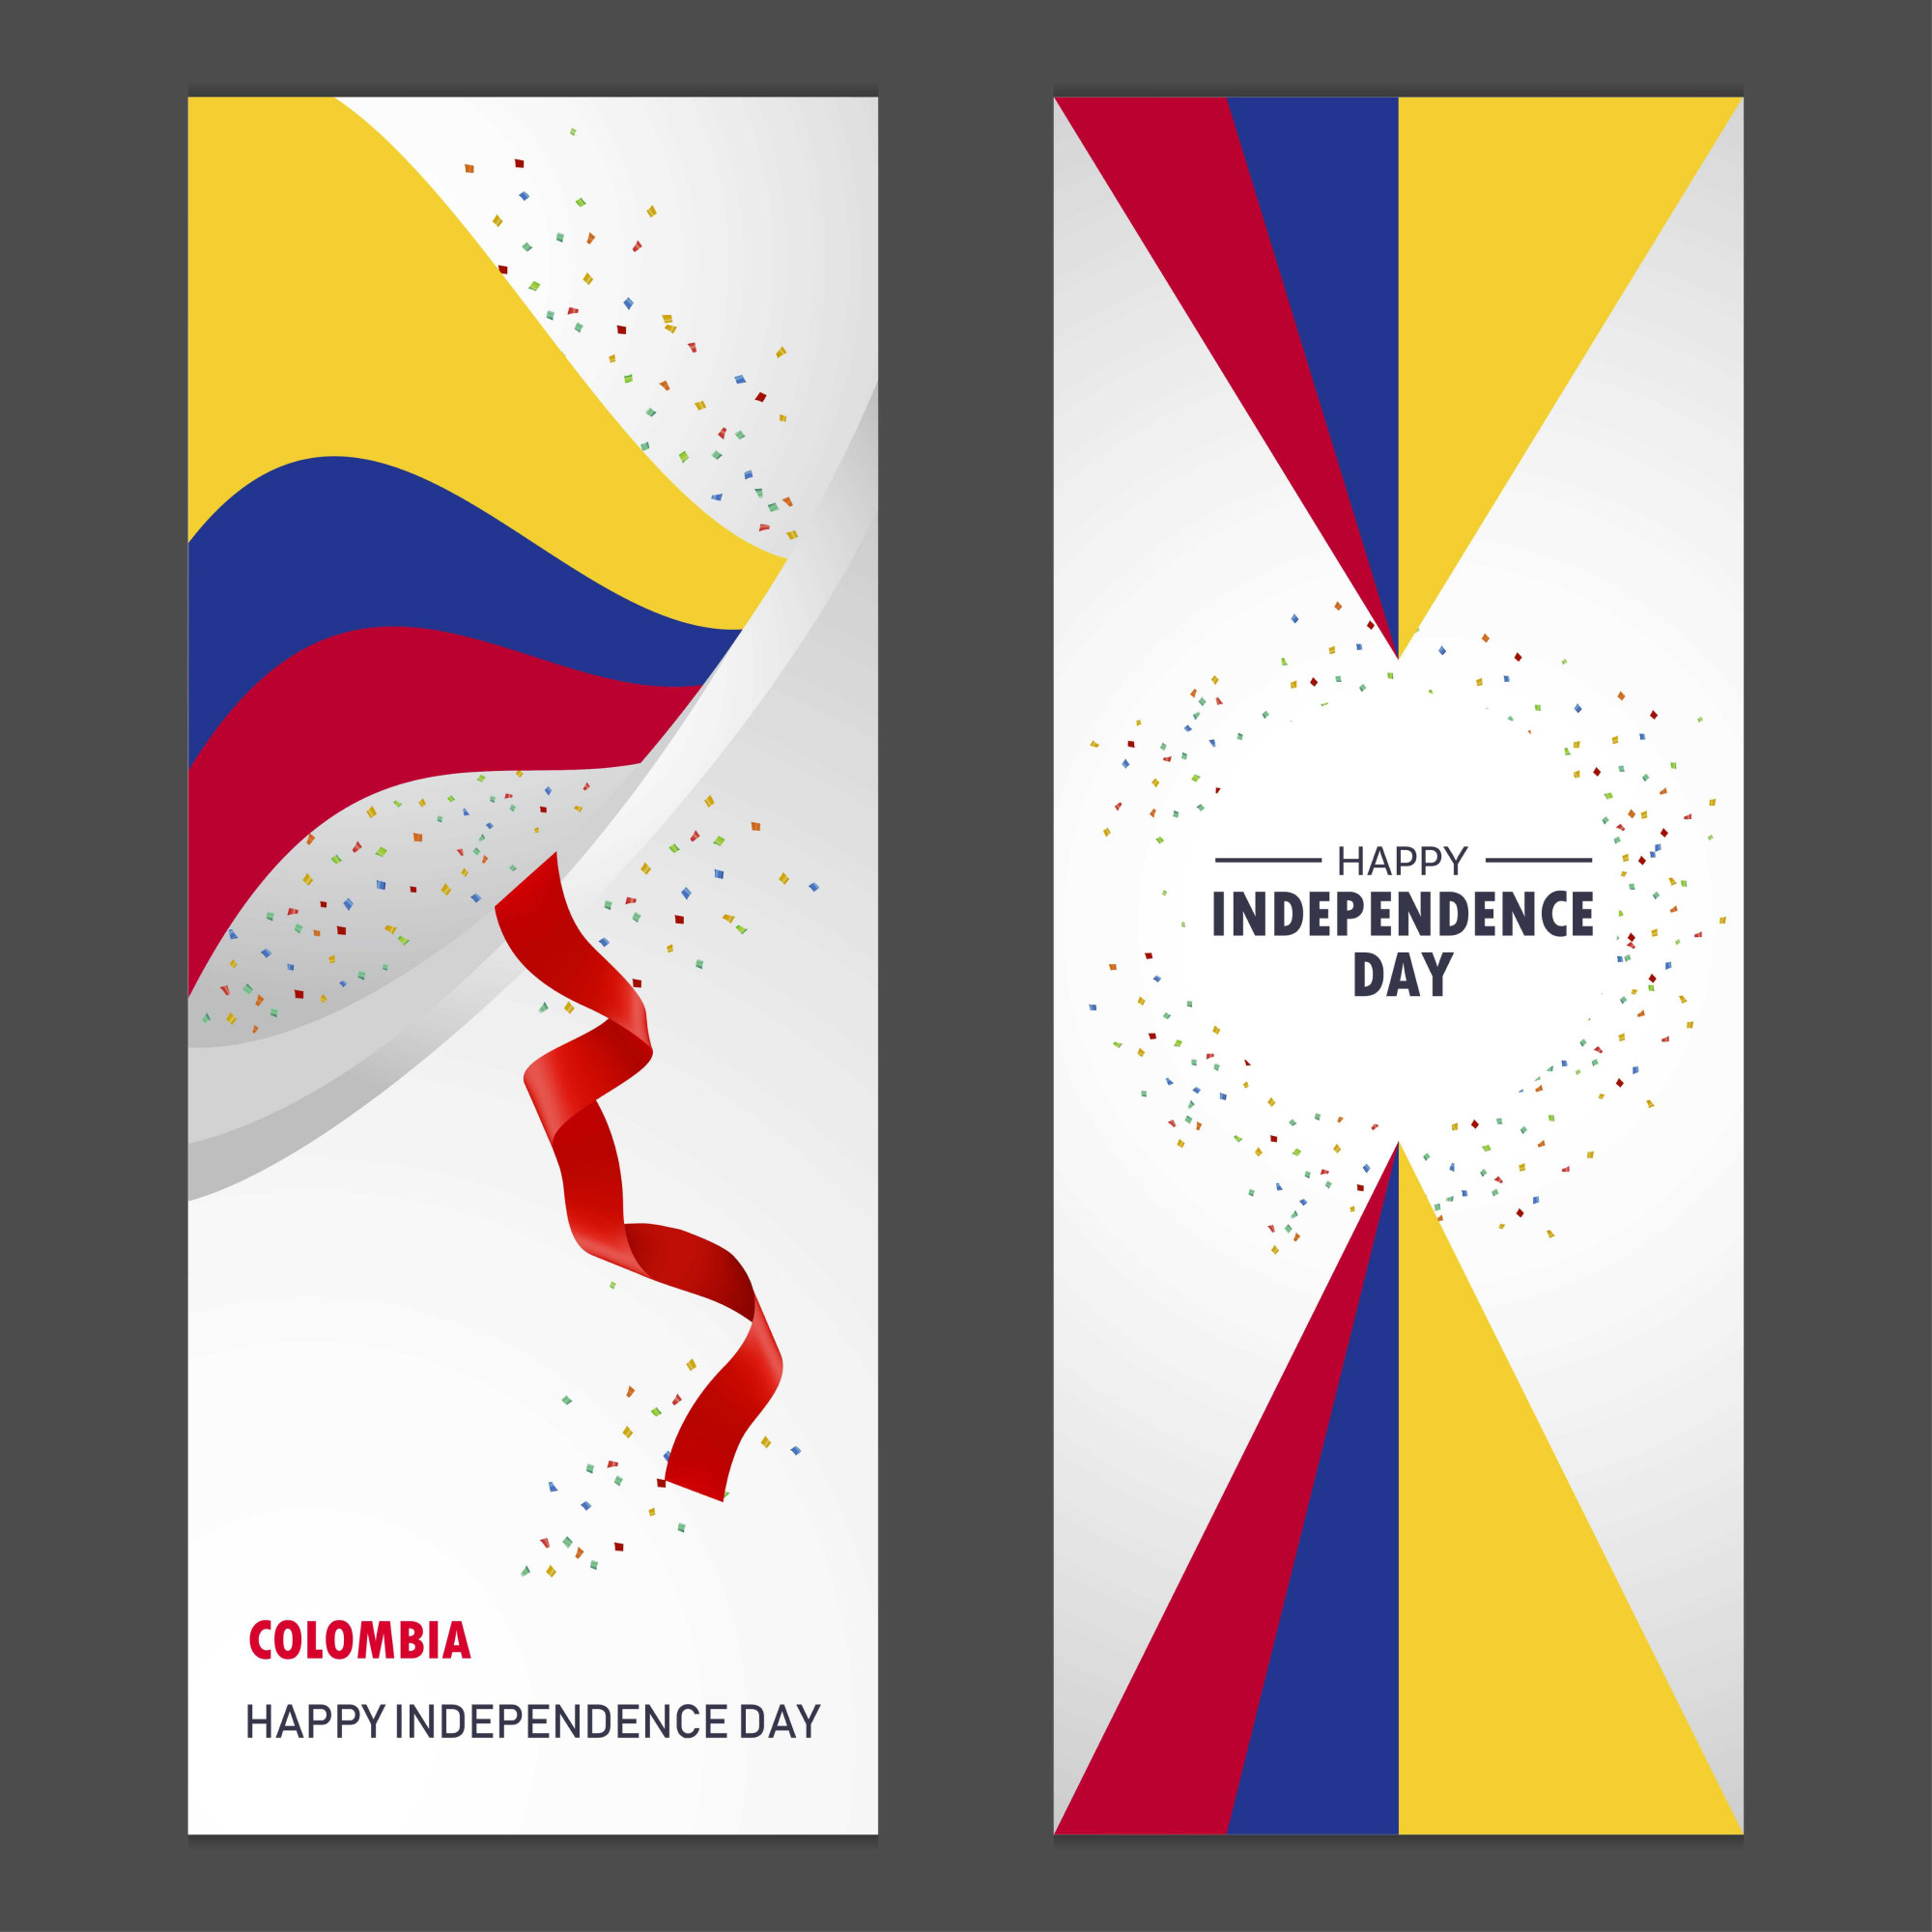 Colombia Happy independence day